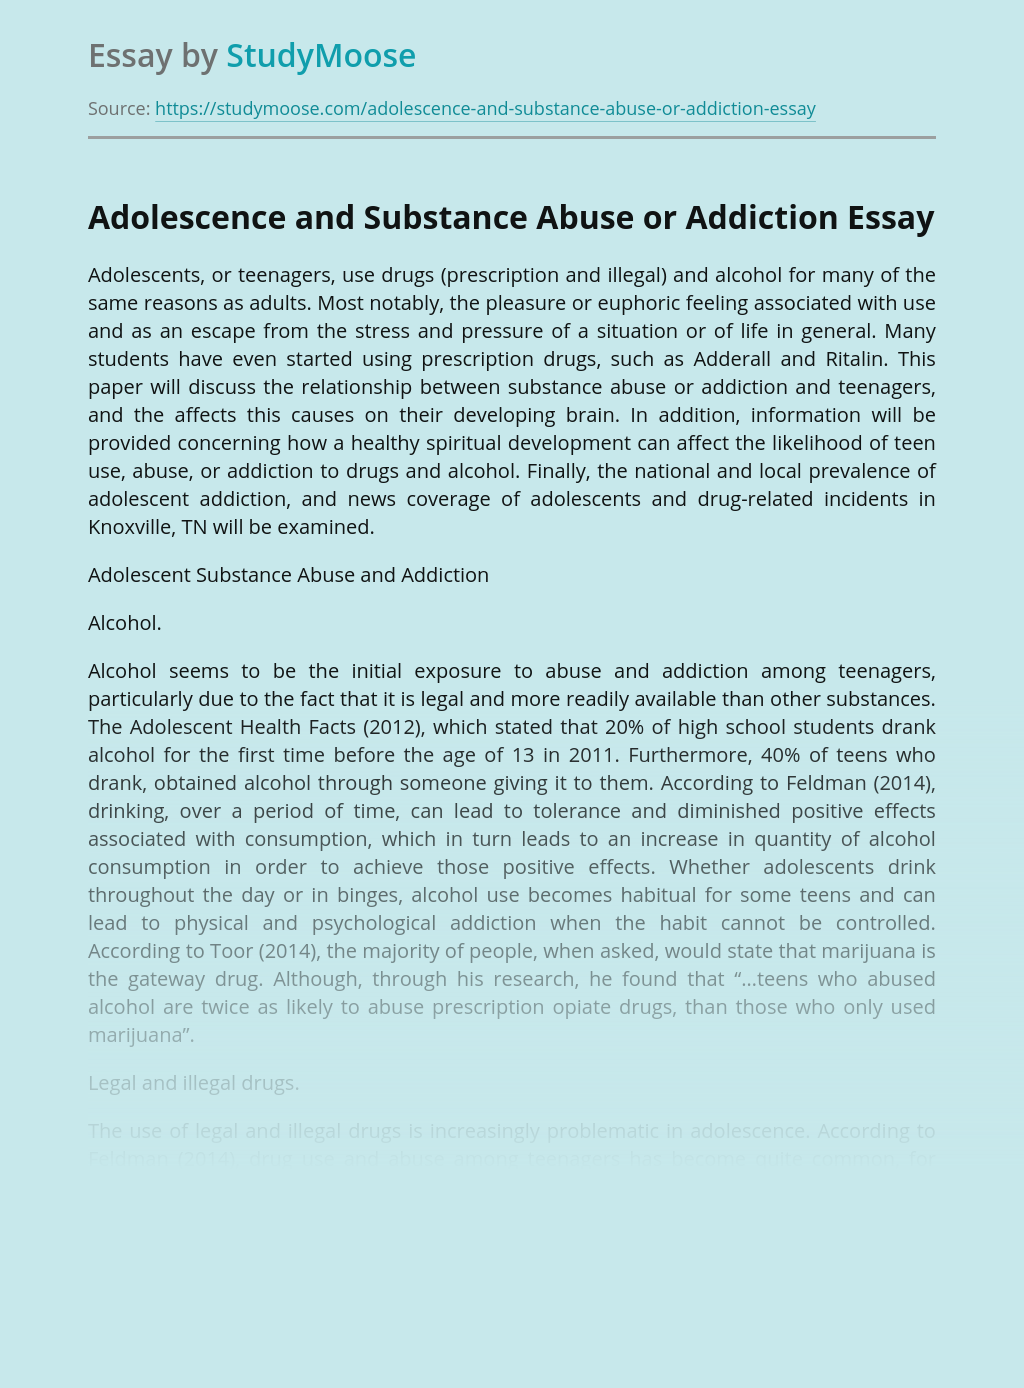 Adolescence and Substance Abuse or Addiction